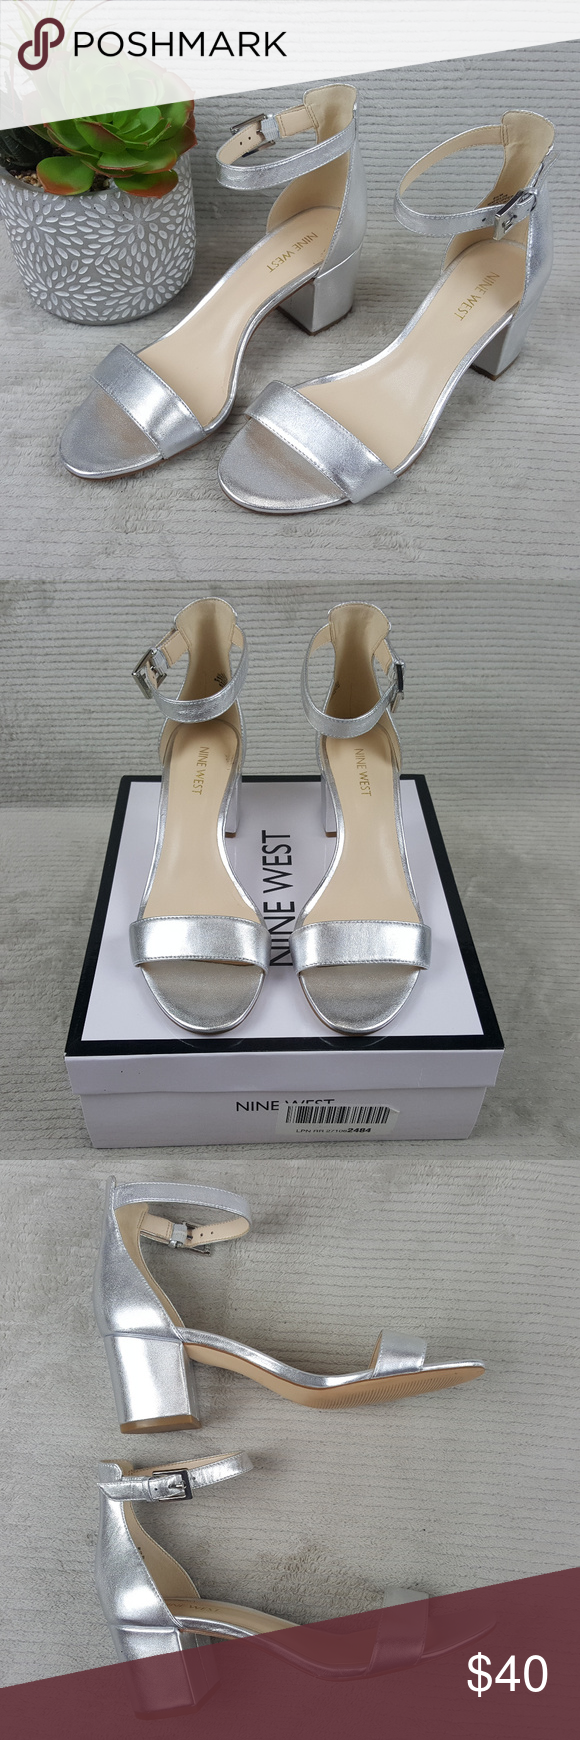 dfa07685e12 Nine West Fields Block Heel Ankle Strap Sandals Comes in a beautiful  metallic silver. Excellent condition. Ships in original box. Please see  pics.